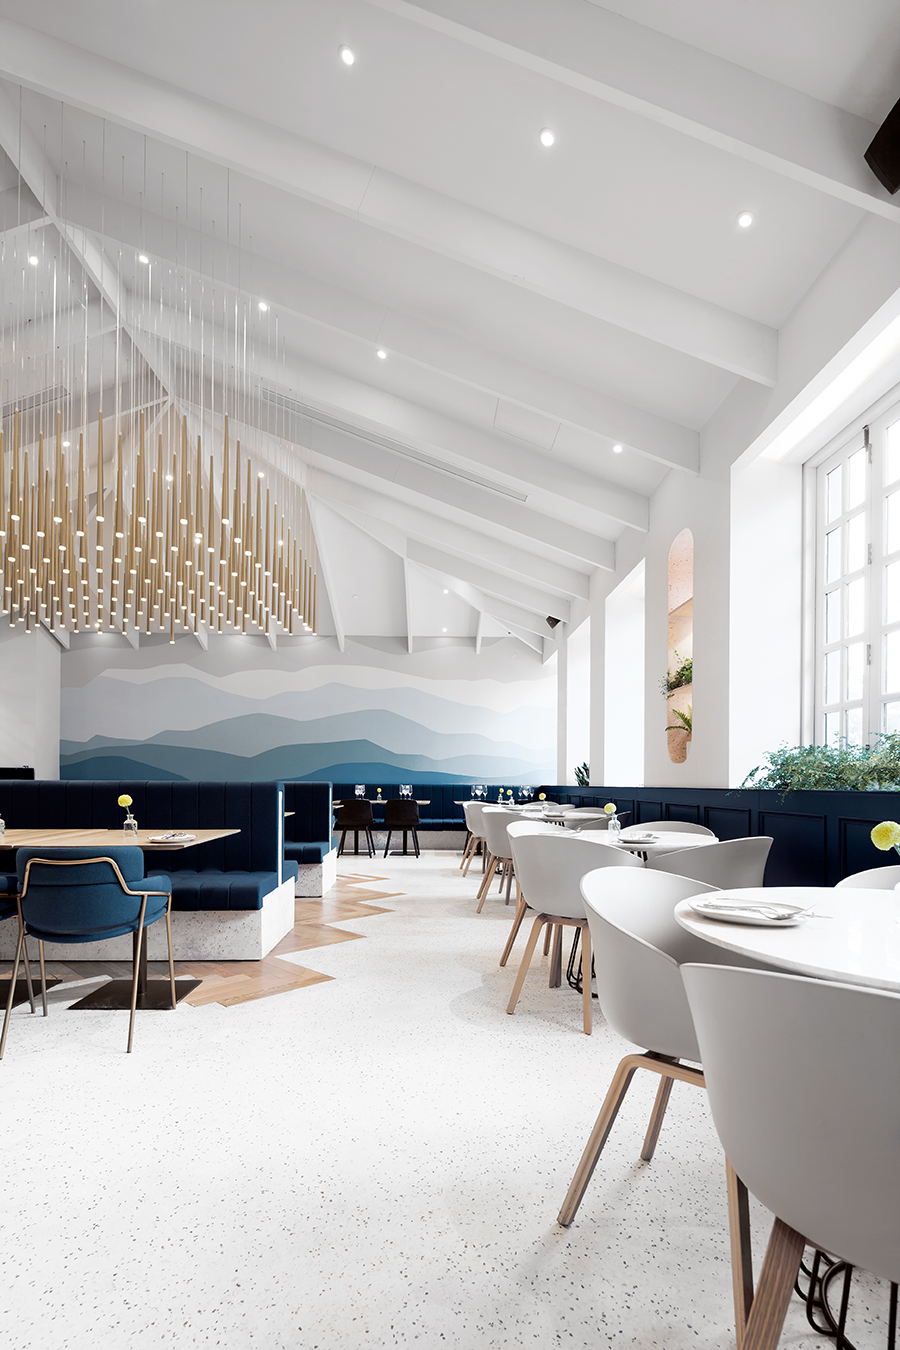 When An Old School Building Turns Into a Luxury Restaurant